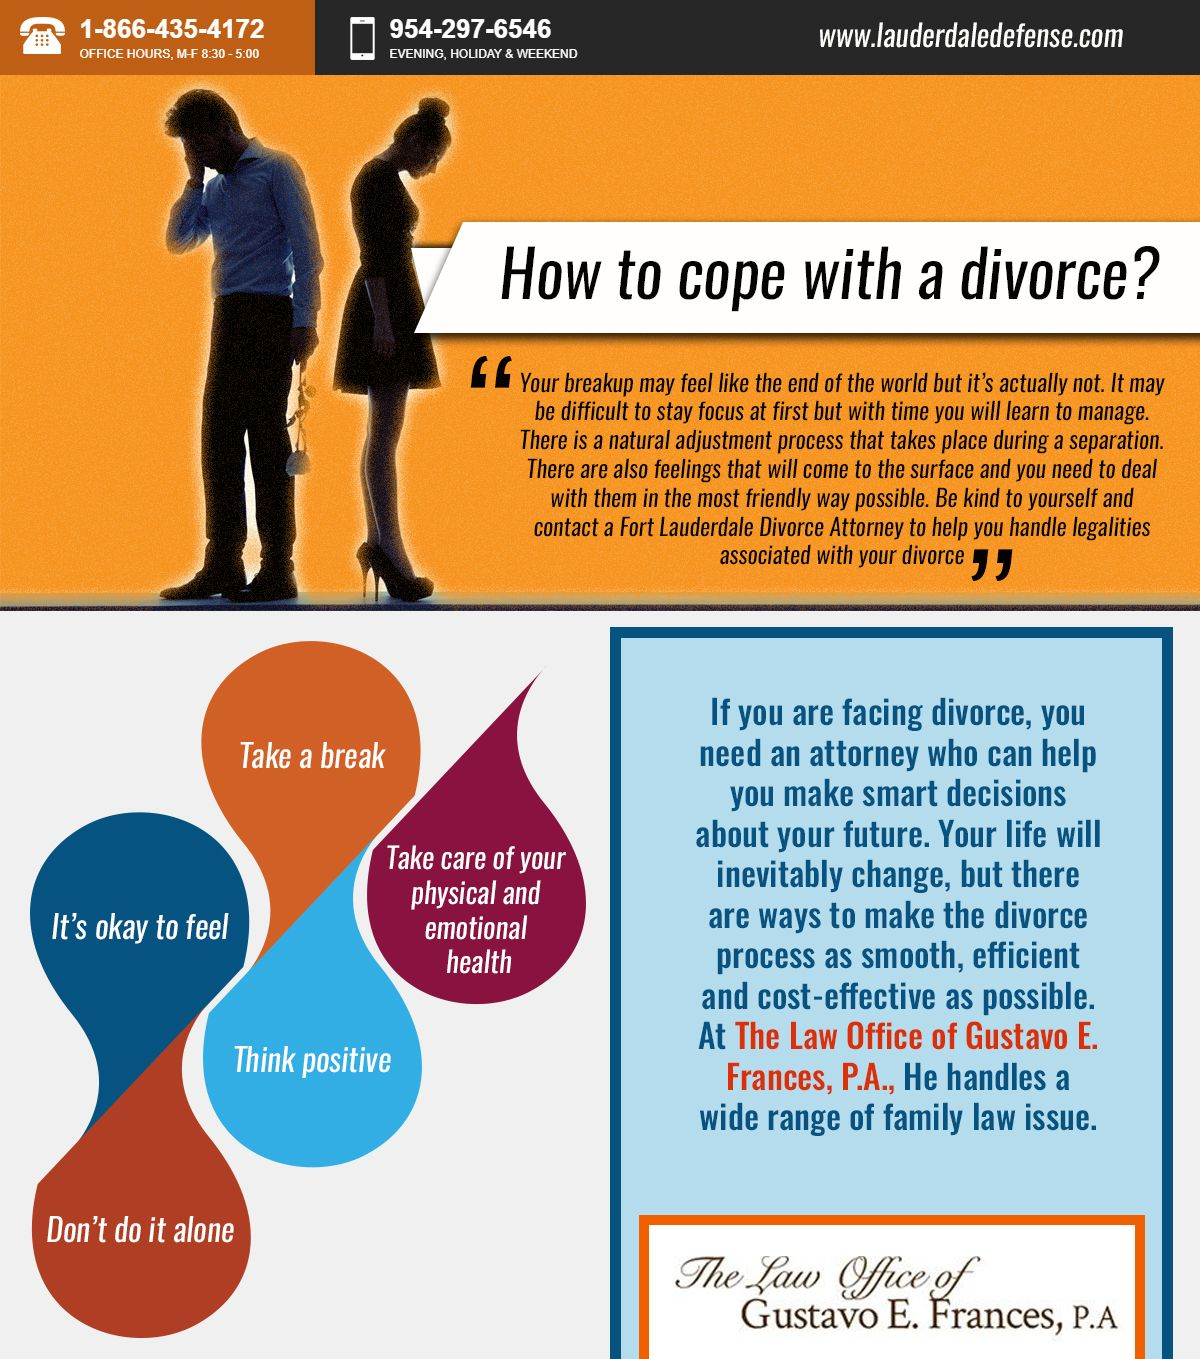 If you are facing divorce you need an attorney who can help you if you are facing divorce you need an attorney who can help you make smart decisions about your future be kind to yourself and contact the fort lauderdale solutioingenieria Image collections